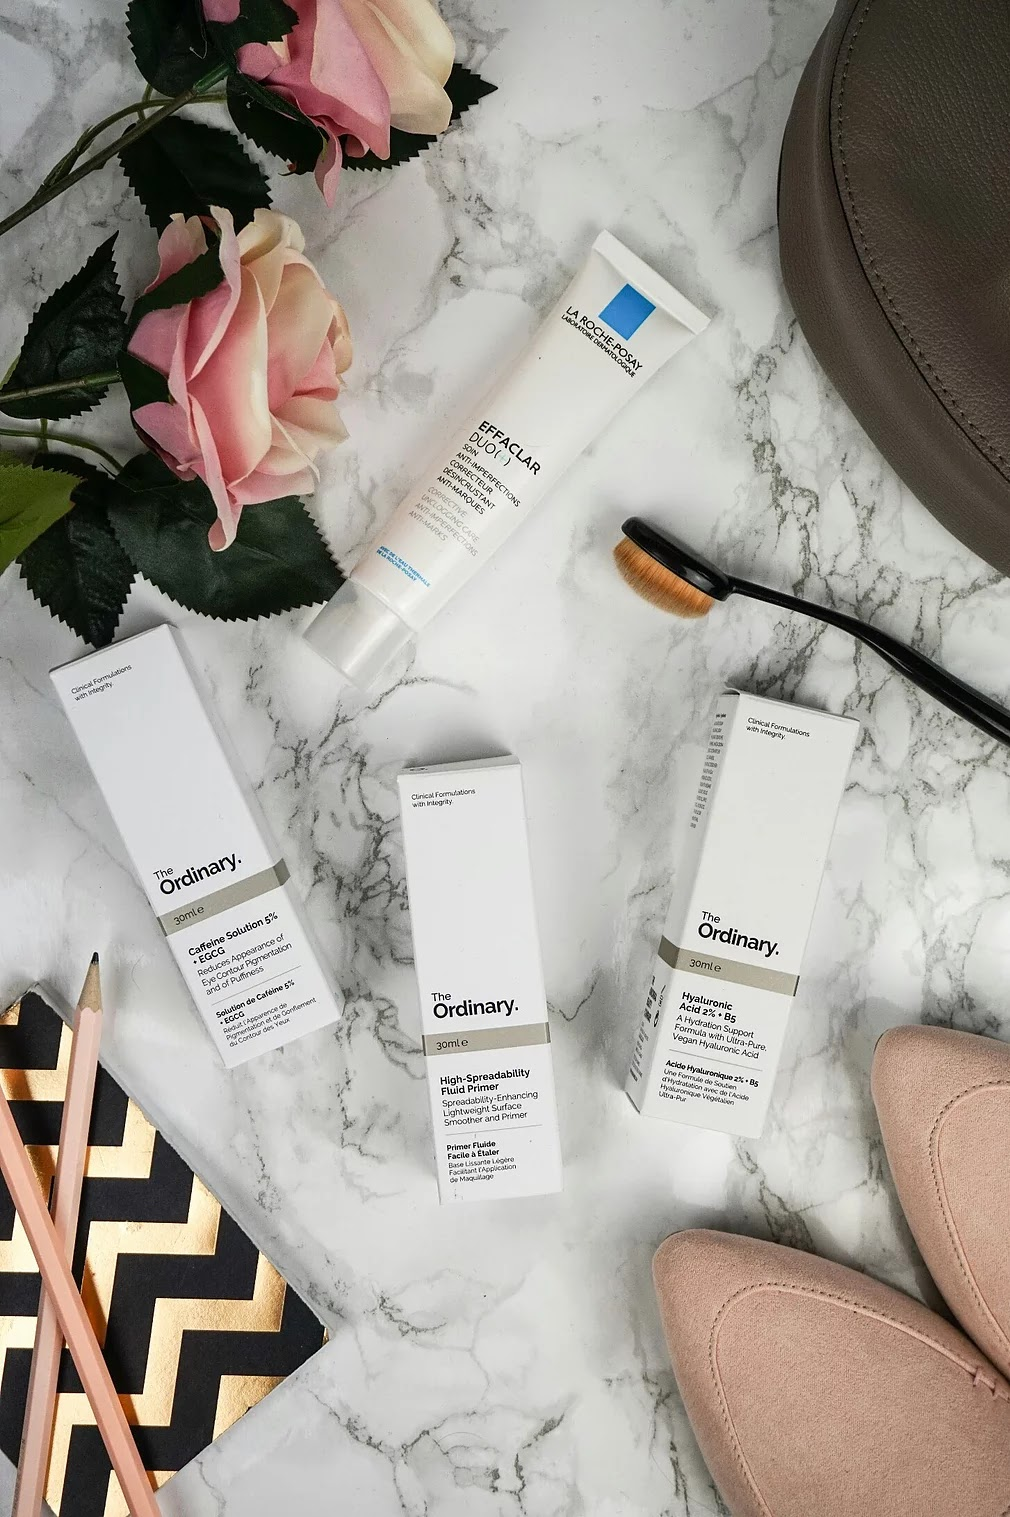 La Roche Posay the Ordinary skincare favourites